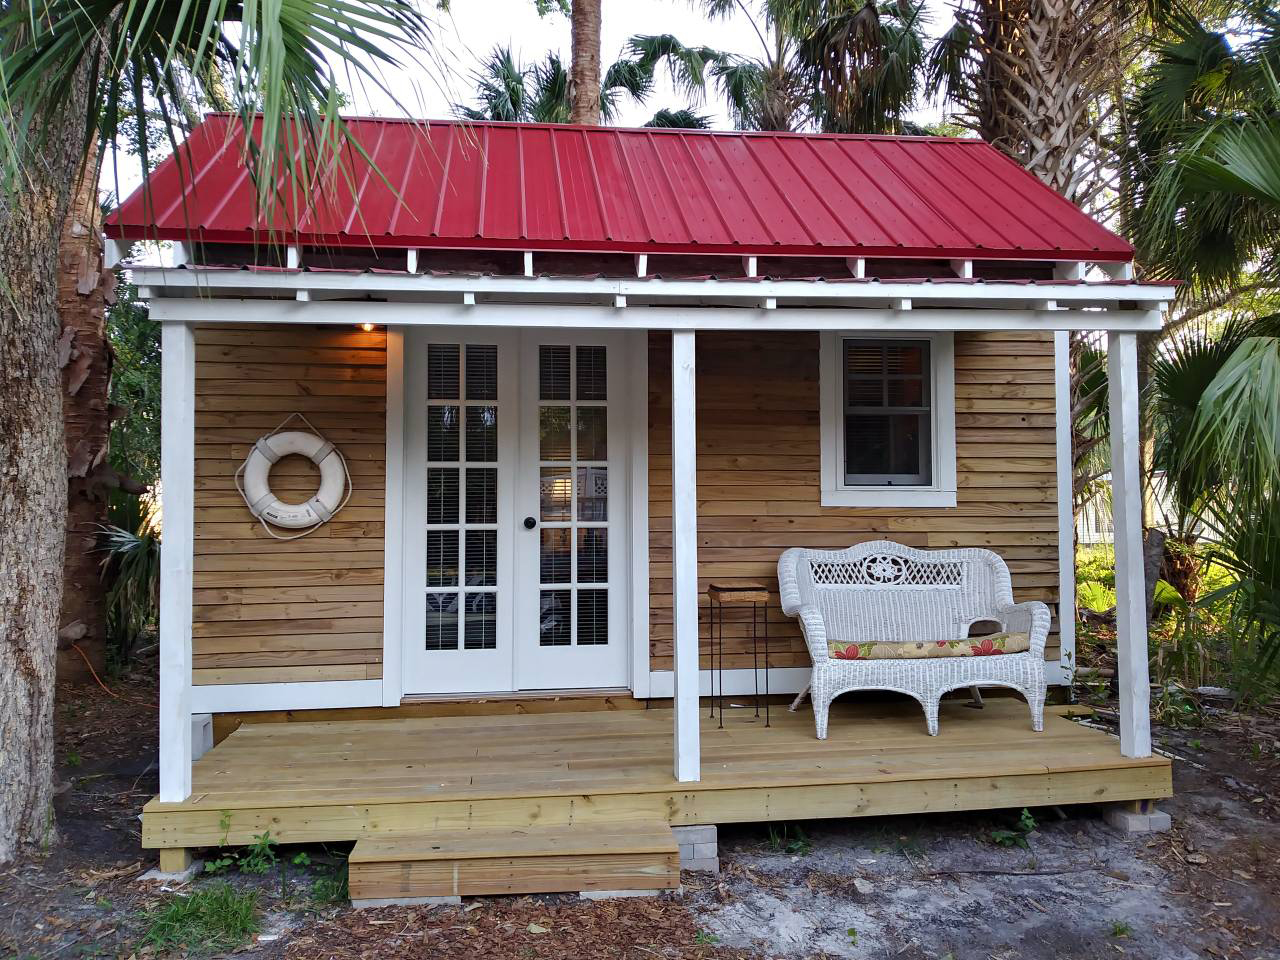 In this salty tiny house, vacation comfort meets St. Augustine's signature seafaring style. The small lodging—with a hot tub, an outdoor shower, and a patio—is just 10 minutes from the nearest beach and from St. Augustine's vibrant Historic Downtown.